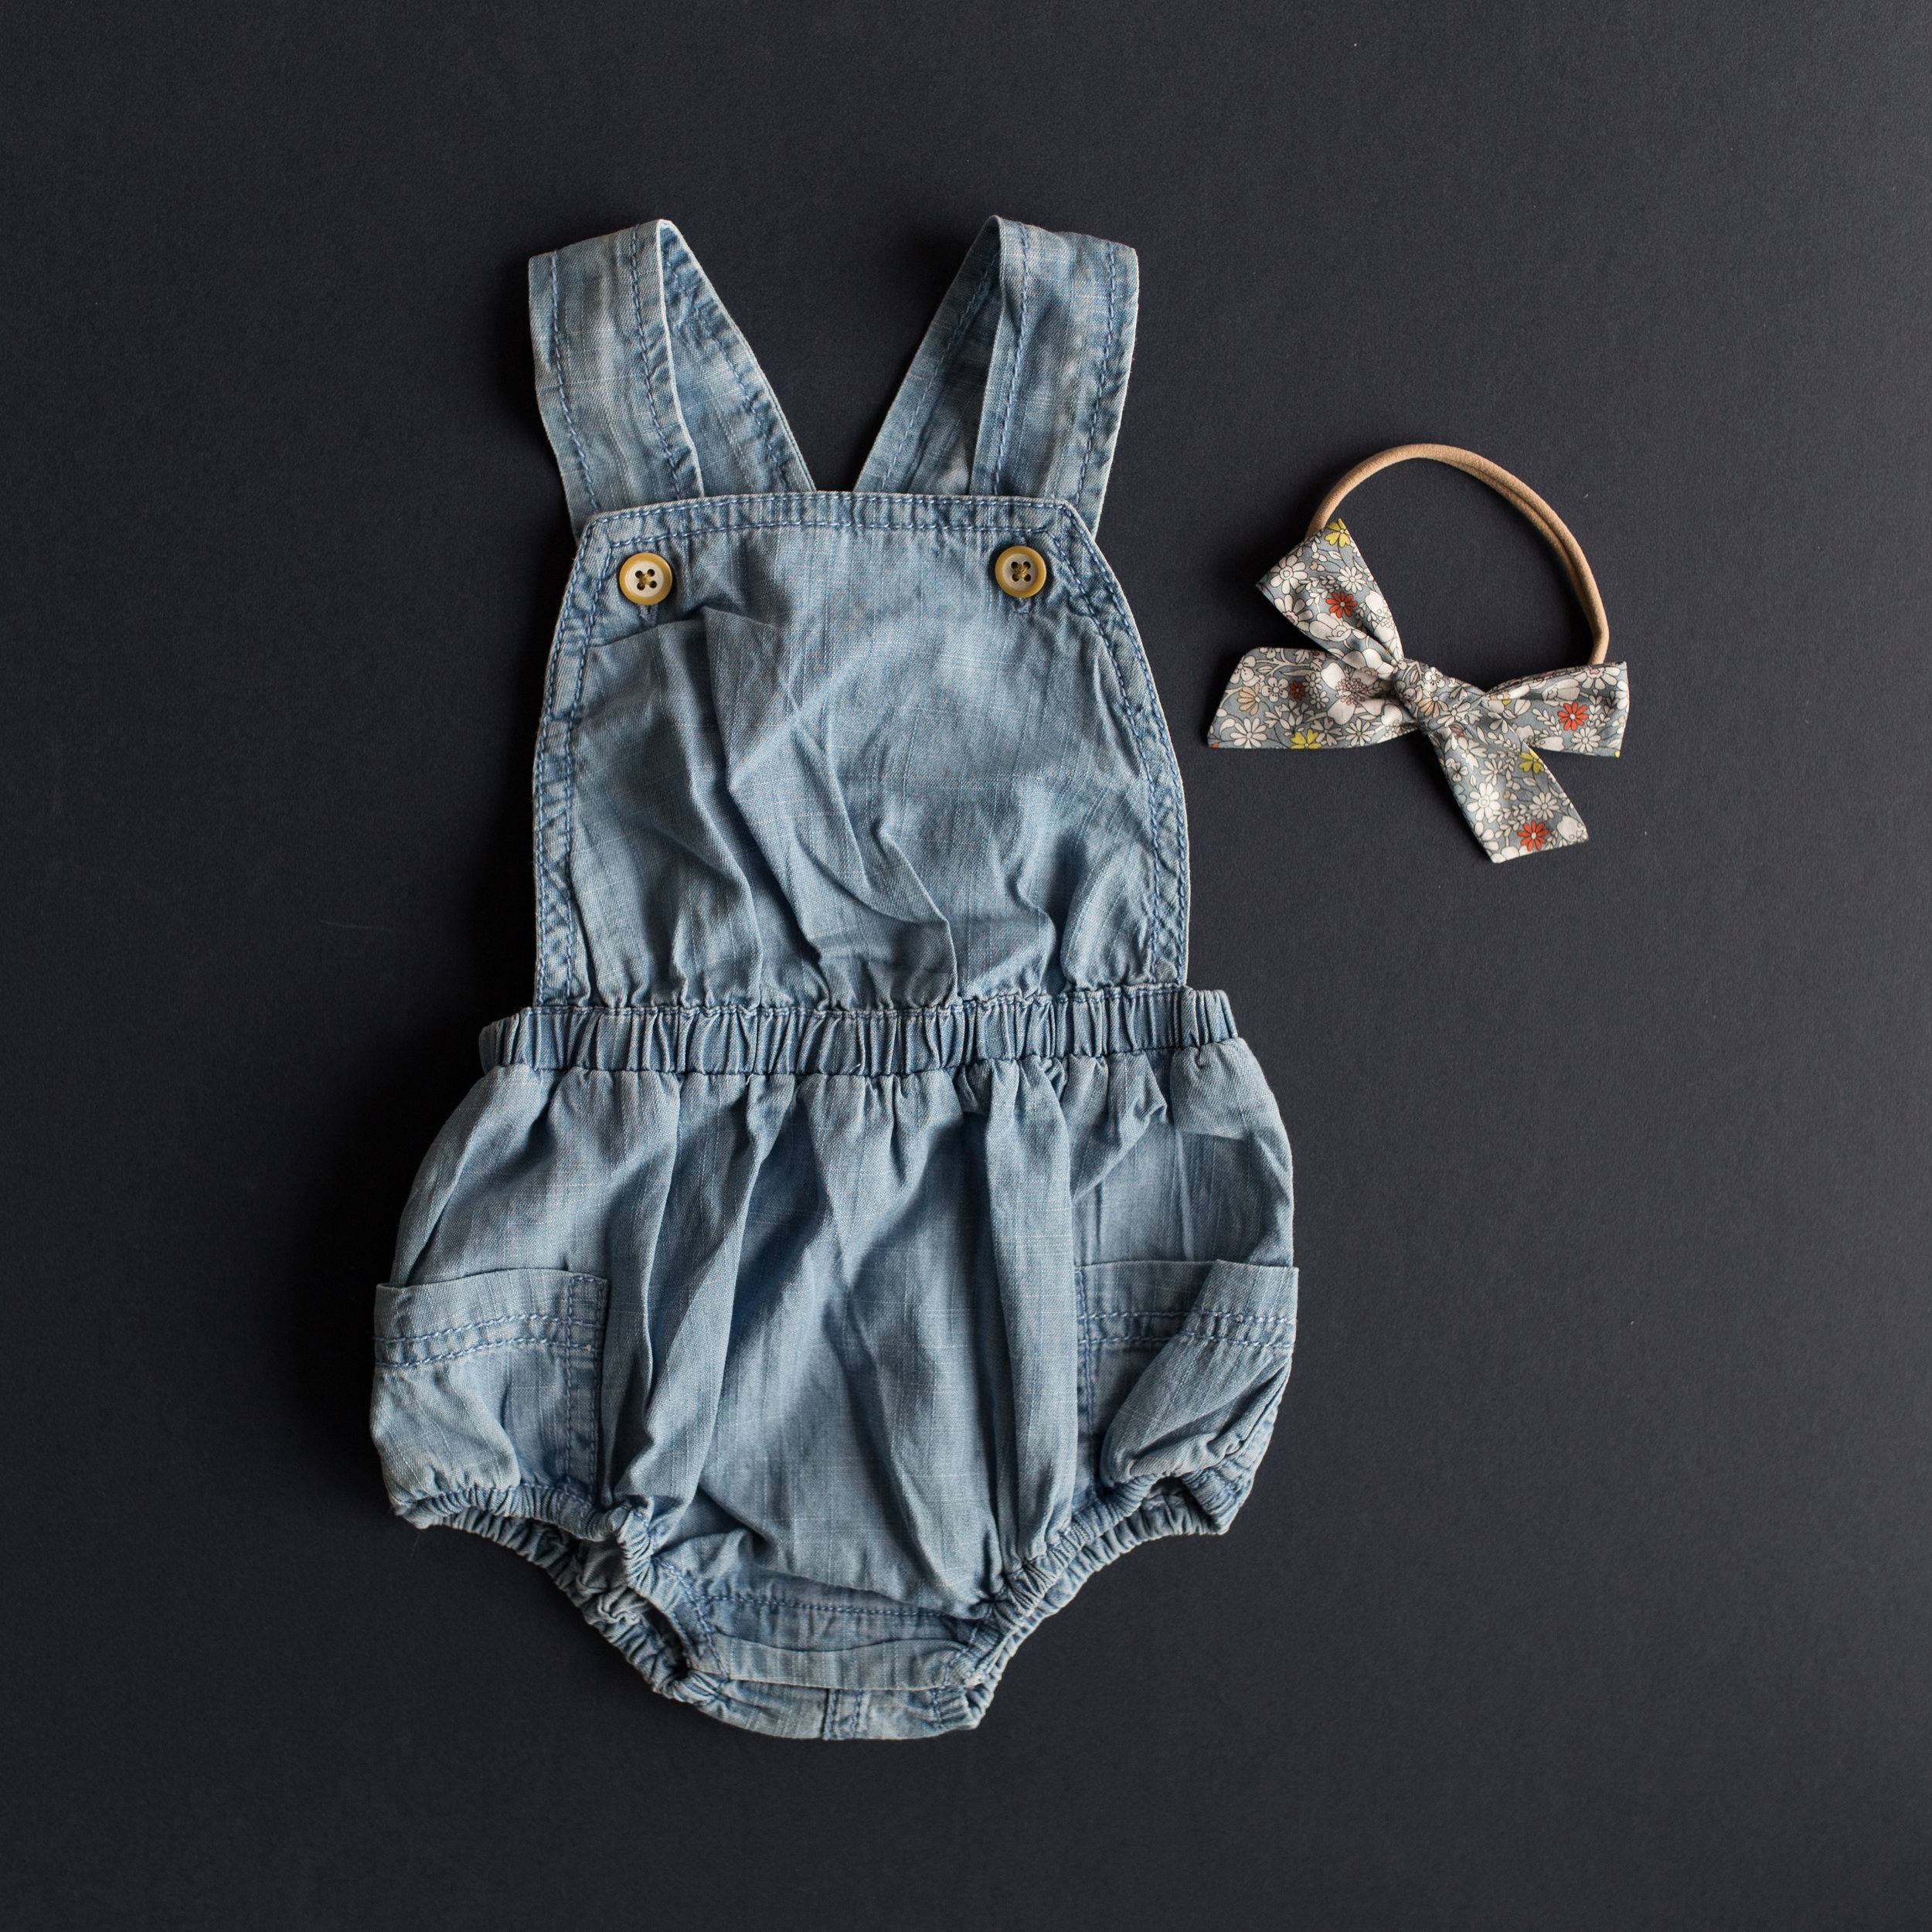 Chambray bubble romper from Old Navy! $17.97 online right now.   http://oldnavy.gap.com/browse/product.do?cid=1026202&pcid=96918&vid=1&pid=613885002